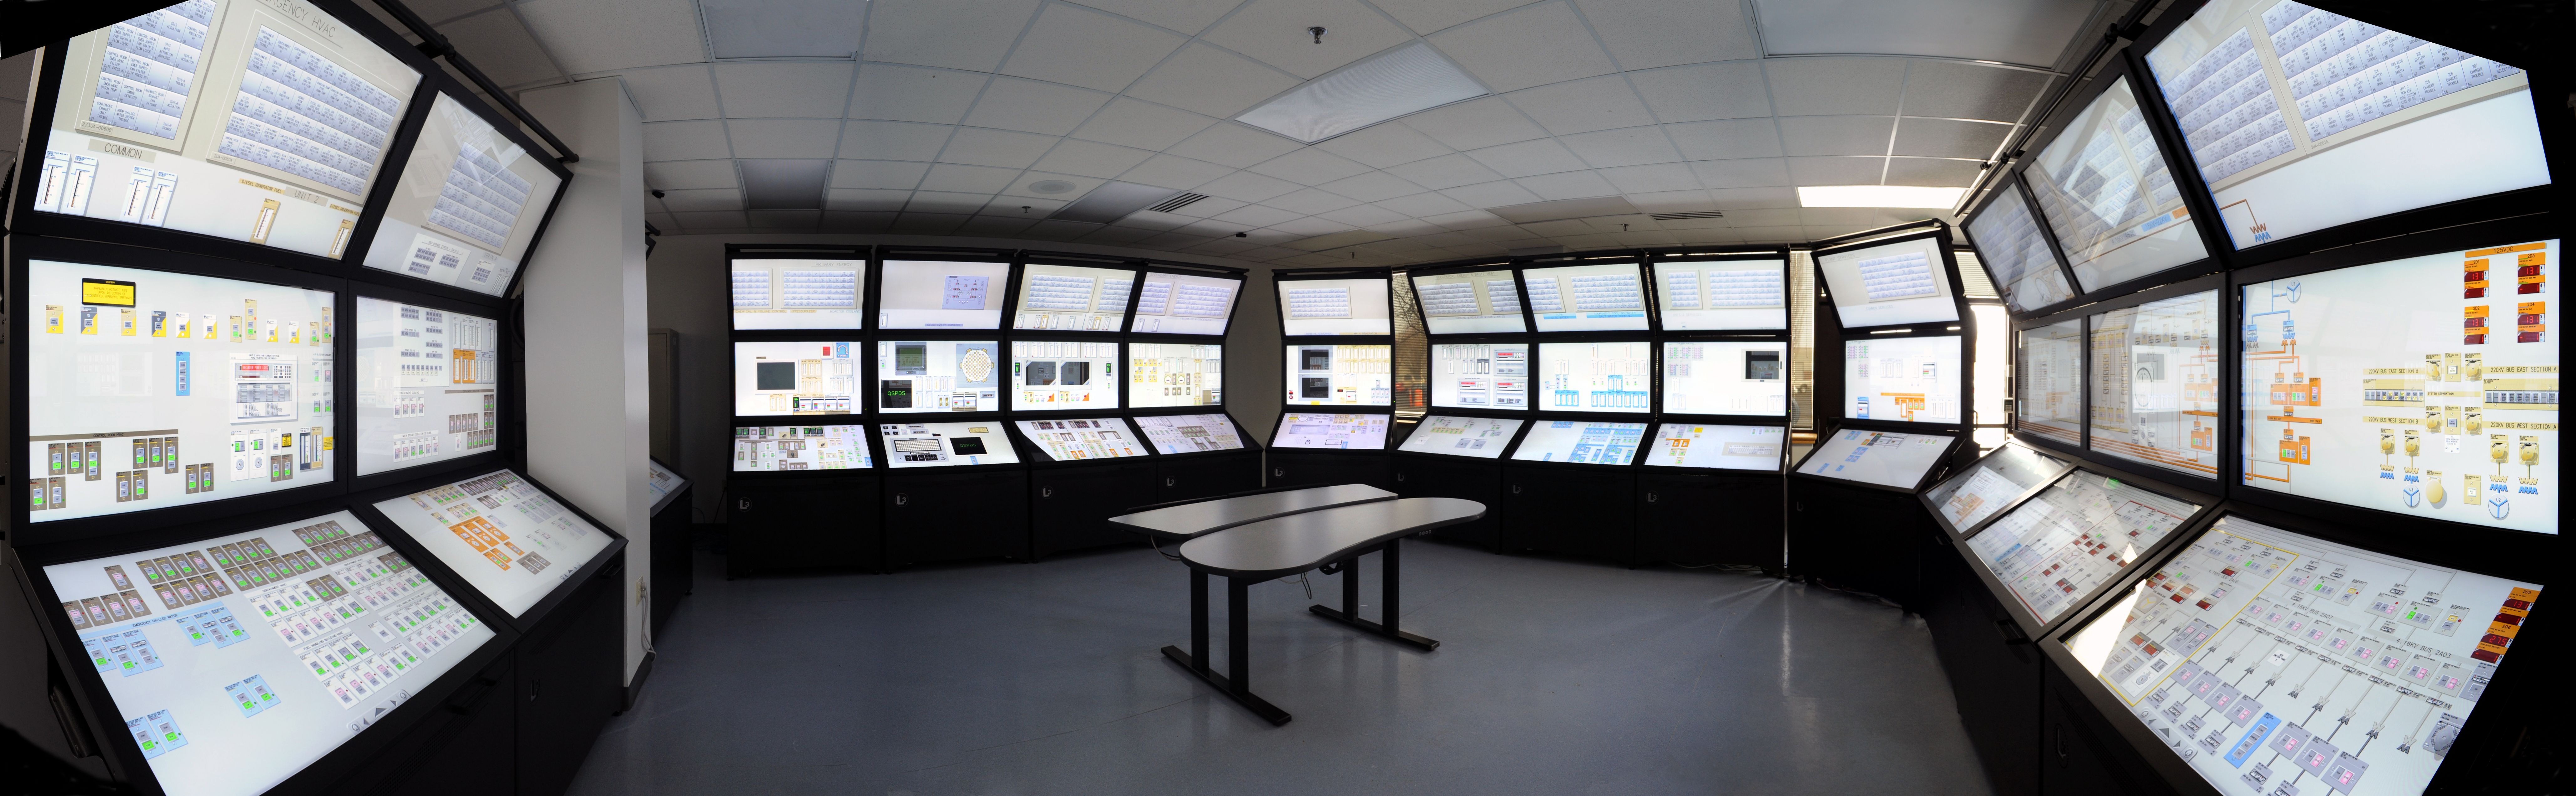 hight resolution of modernizing nuclear power plants to help extend their operating lifetimes is no small task but the endeavor offers an opportunity to improve control room